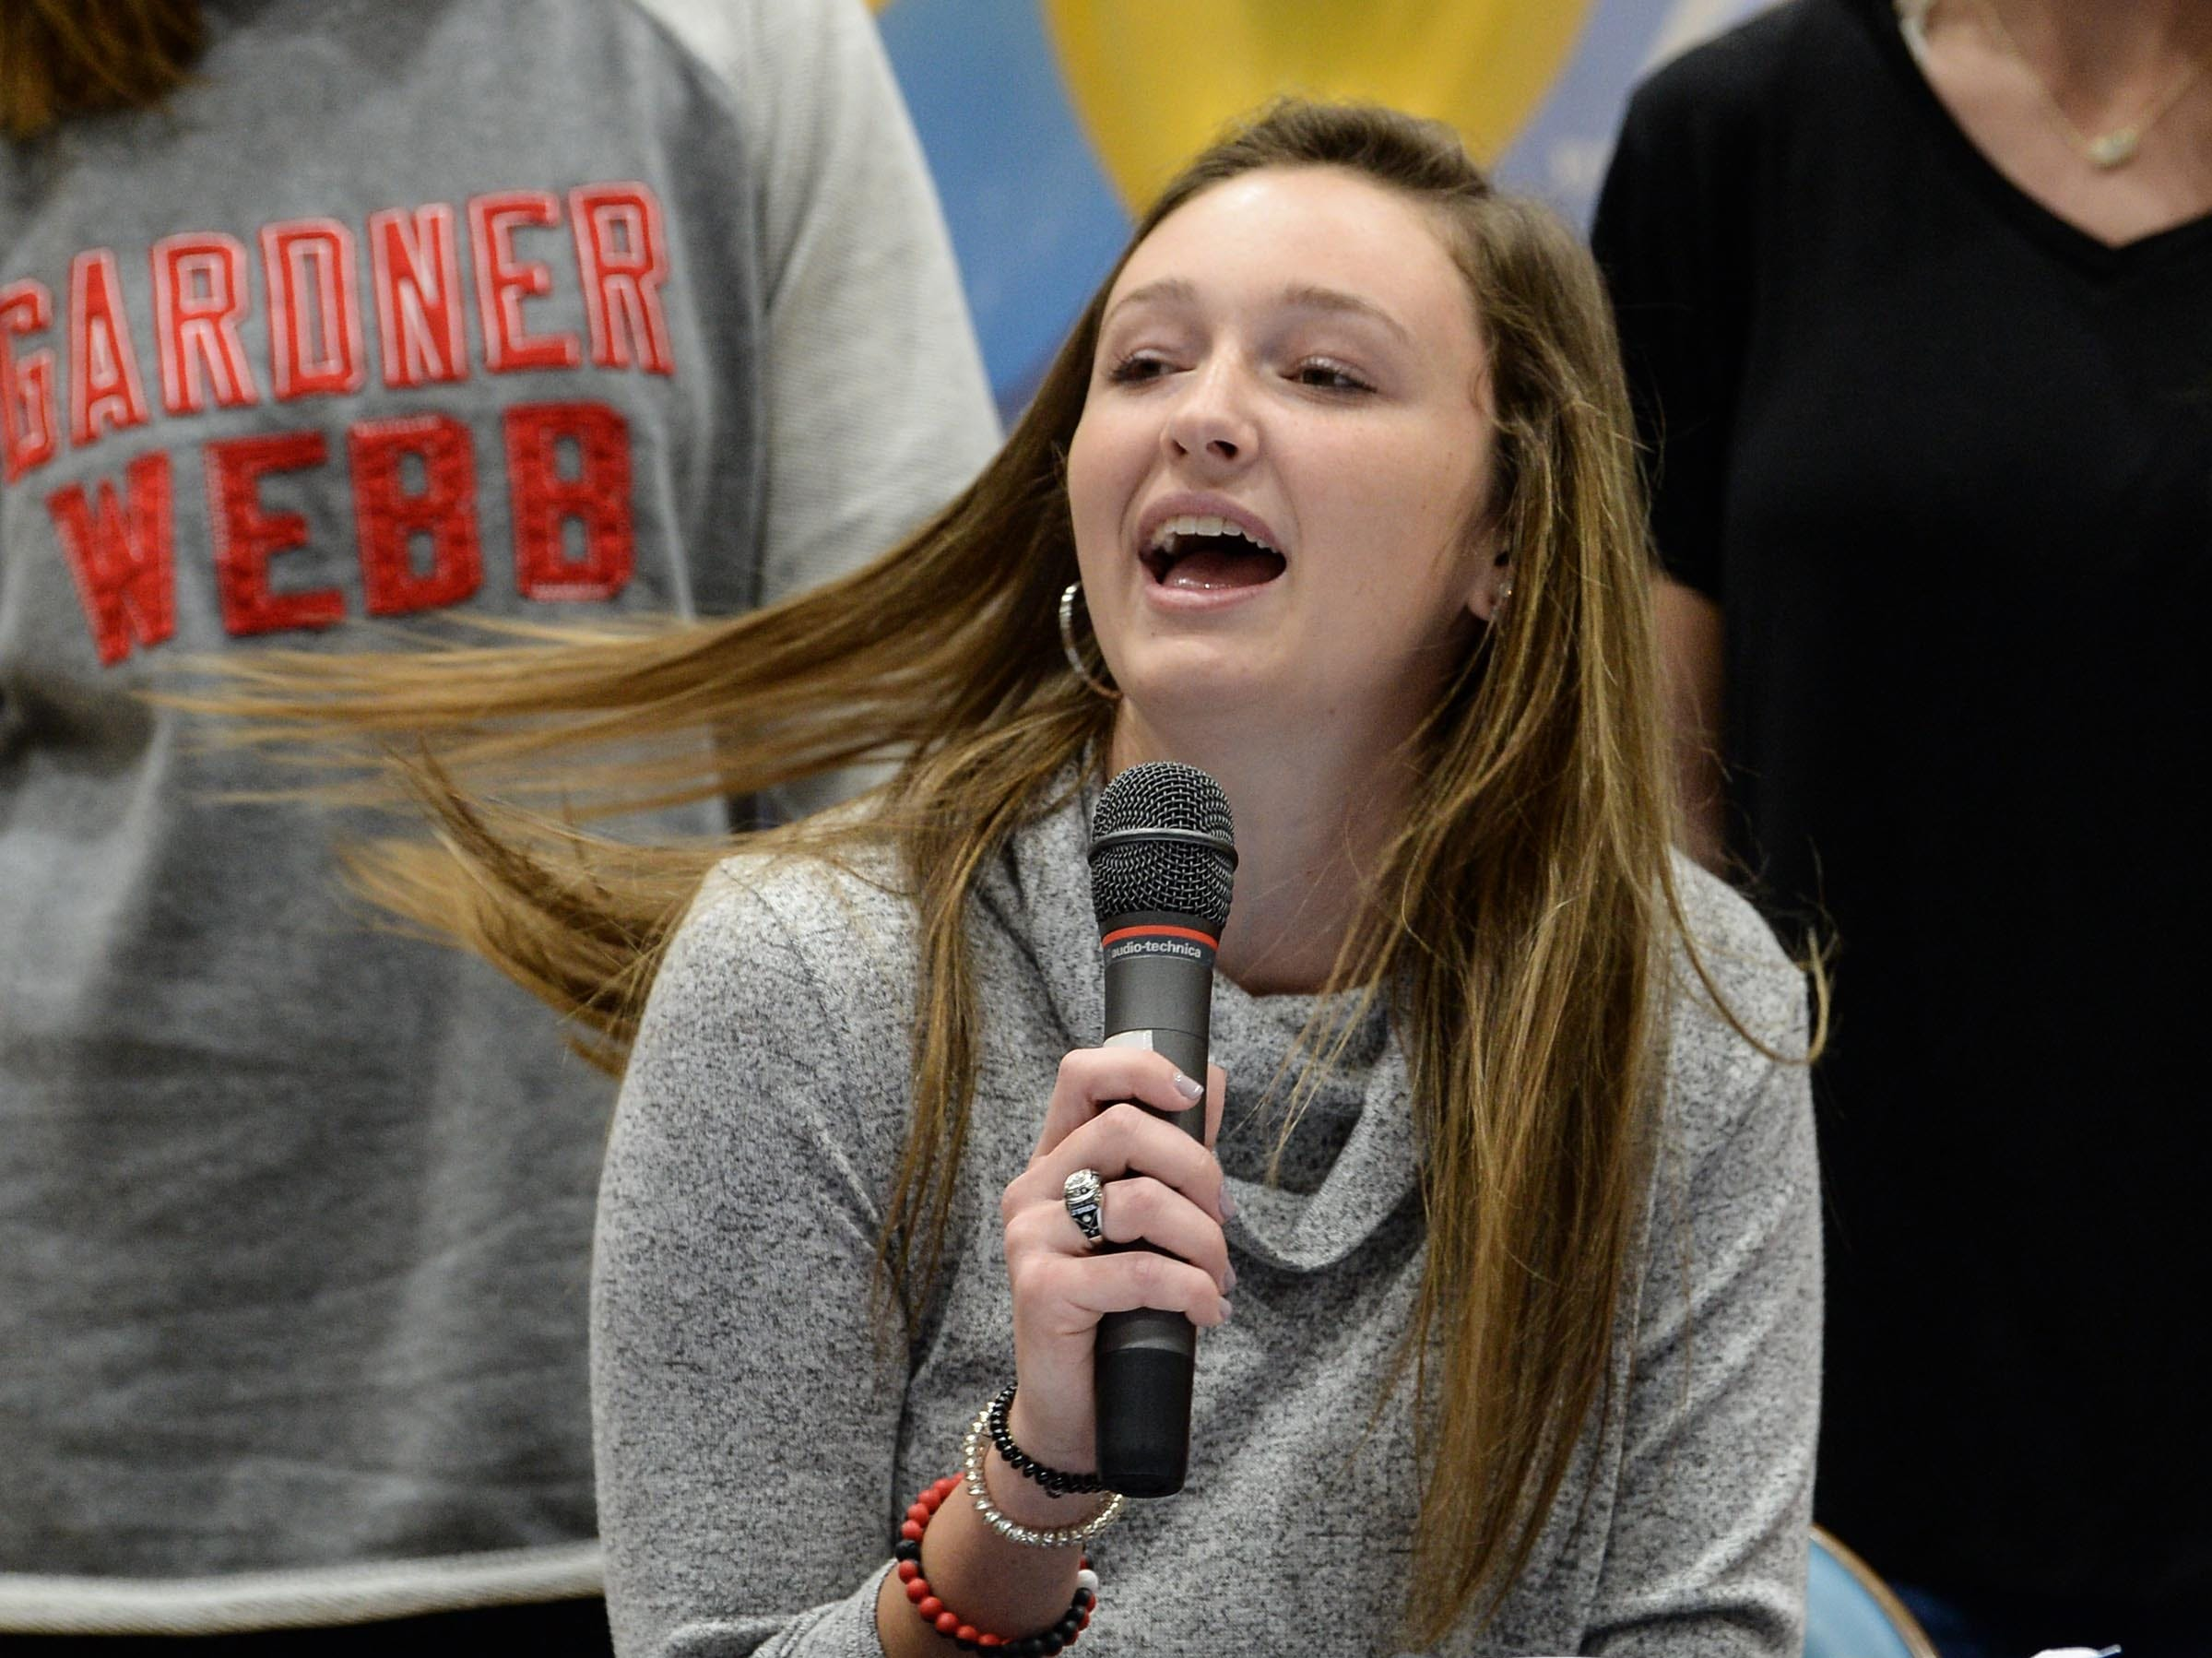 Gardner Webb University golf signee Gillian O'Brien makes a speech during National Letter of Intent signing day at D.W. Daniel High School in Central Wednesday.